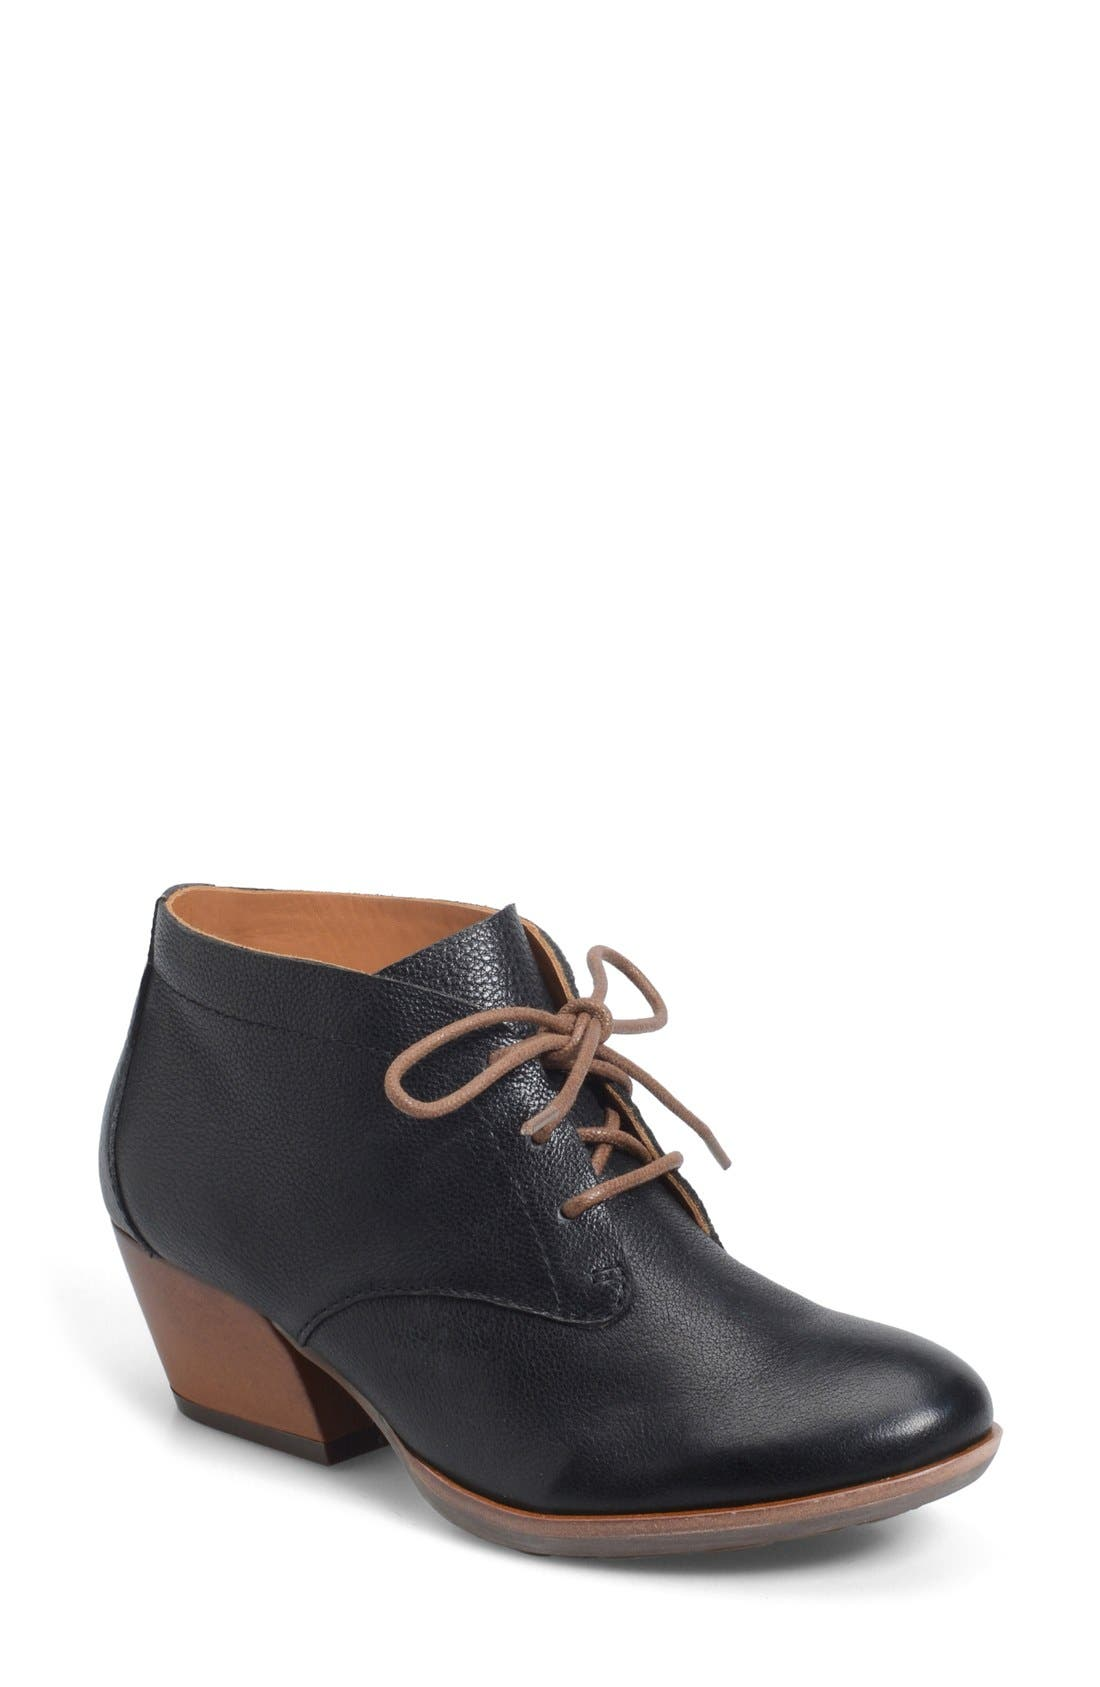 'Helene' Leather Bootie,                             Main thumbnail 1, color,                             001